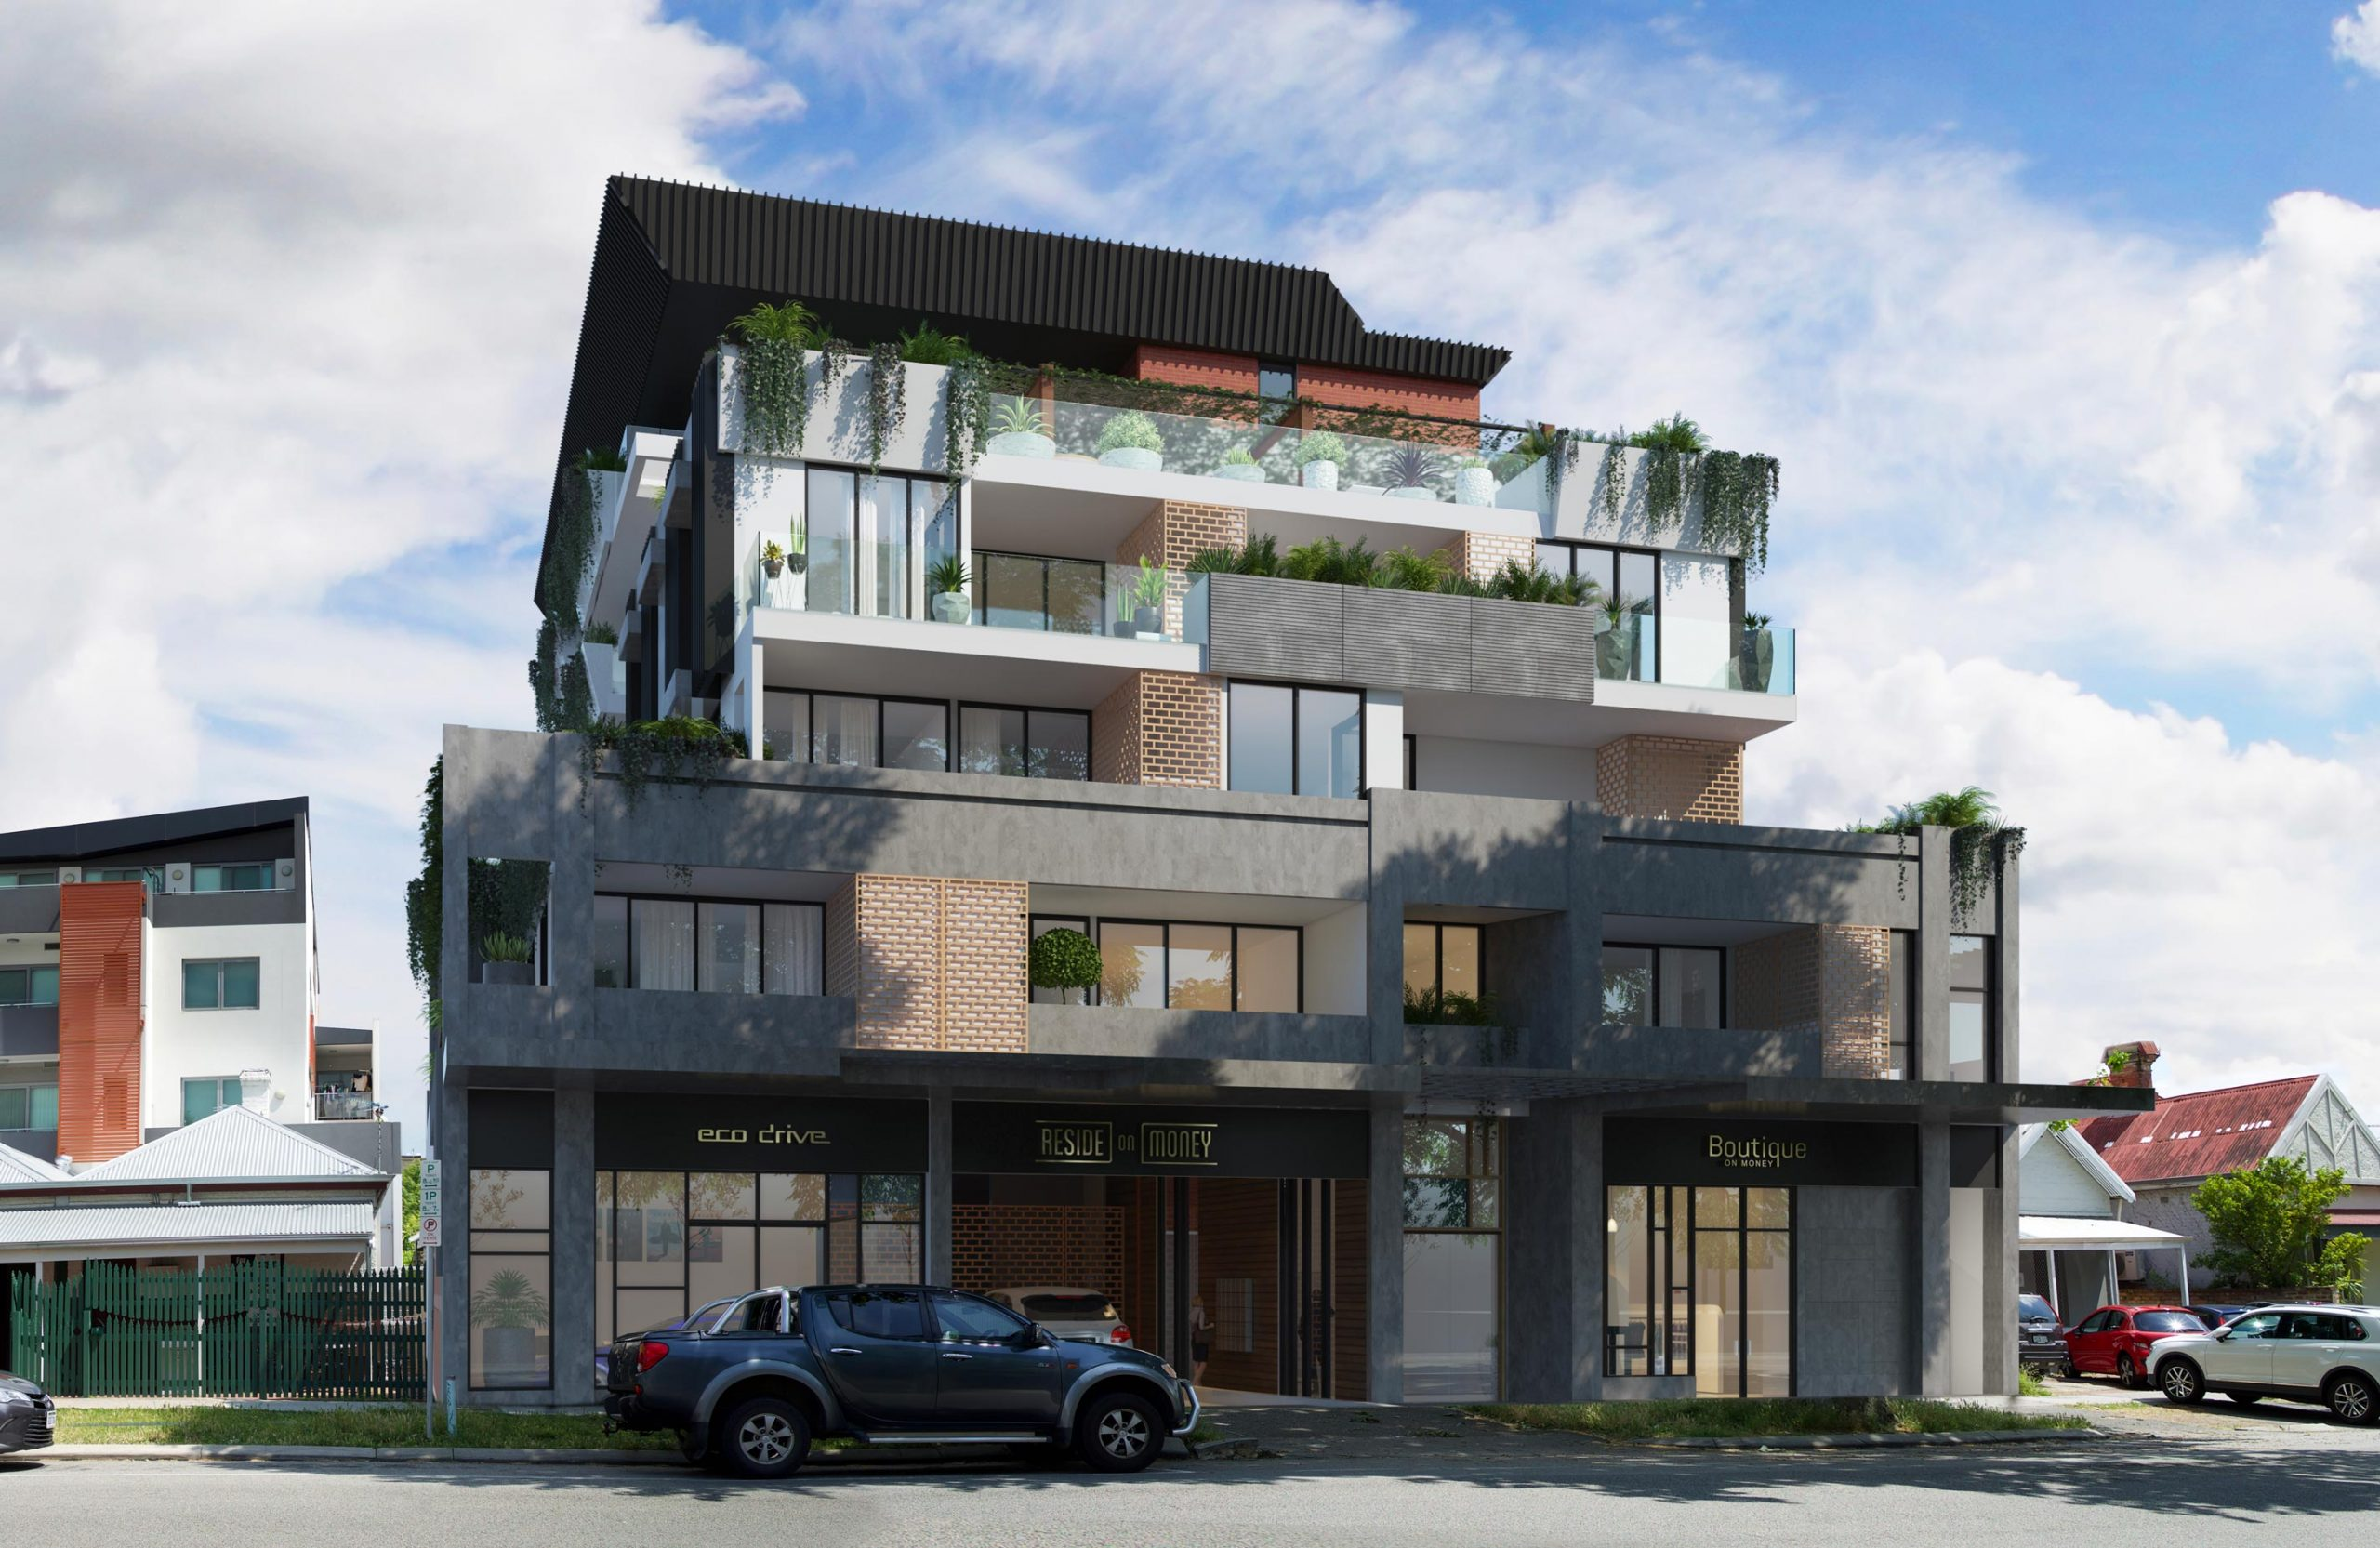 5 storey apartment building with vegetation and screens in Northbridge in daylight